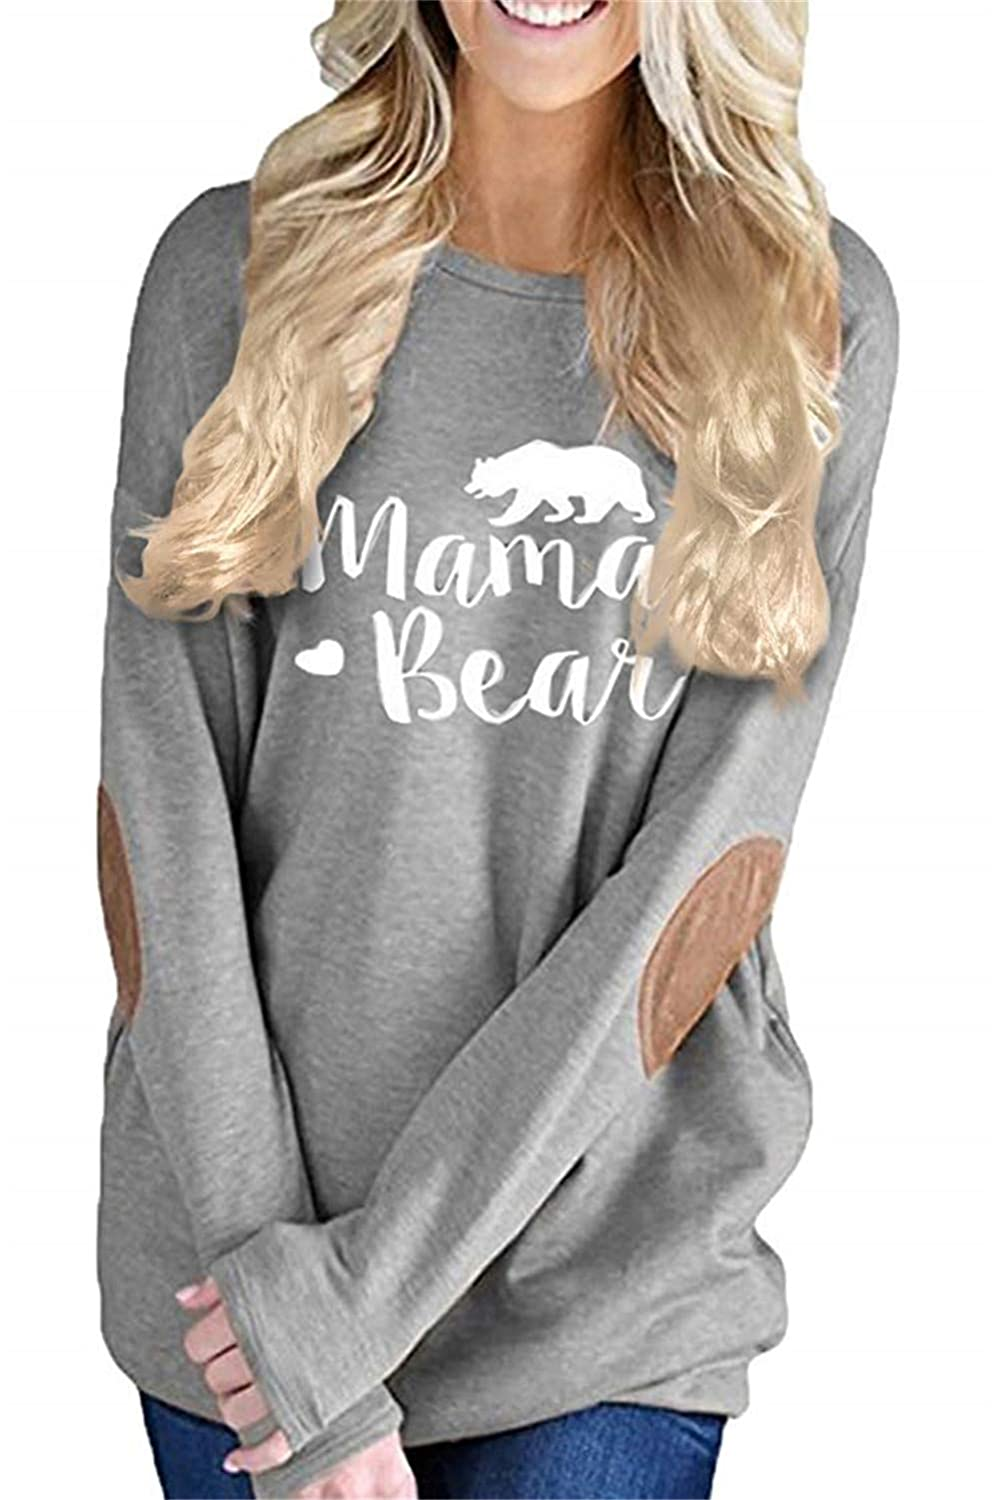 onlypuff Casual Tops for Women Long Sleeve Mama Bear Shirts Folral Print Tunics